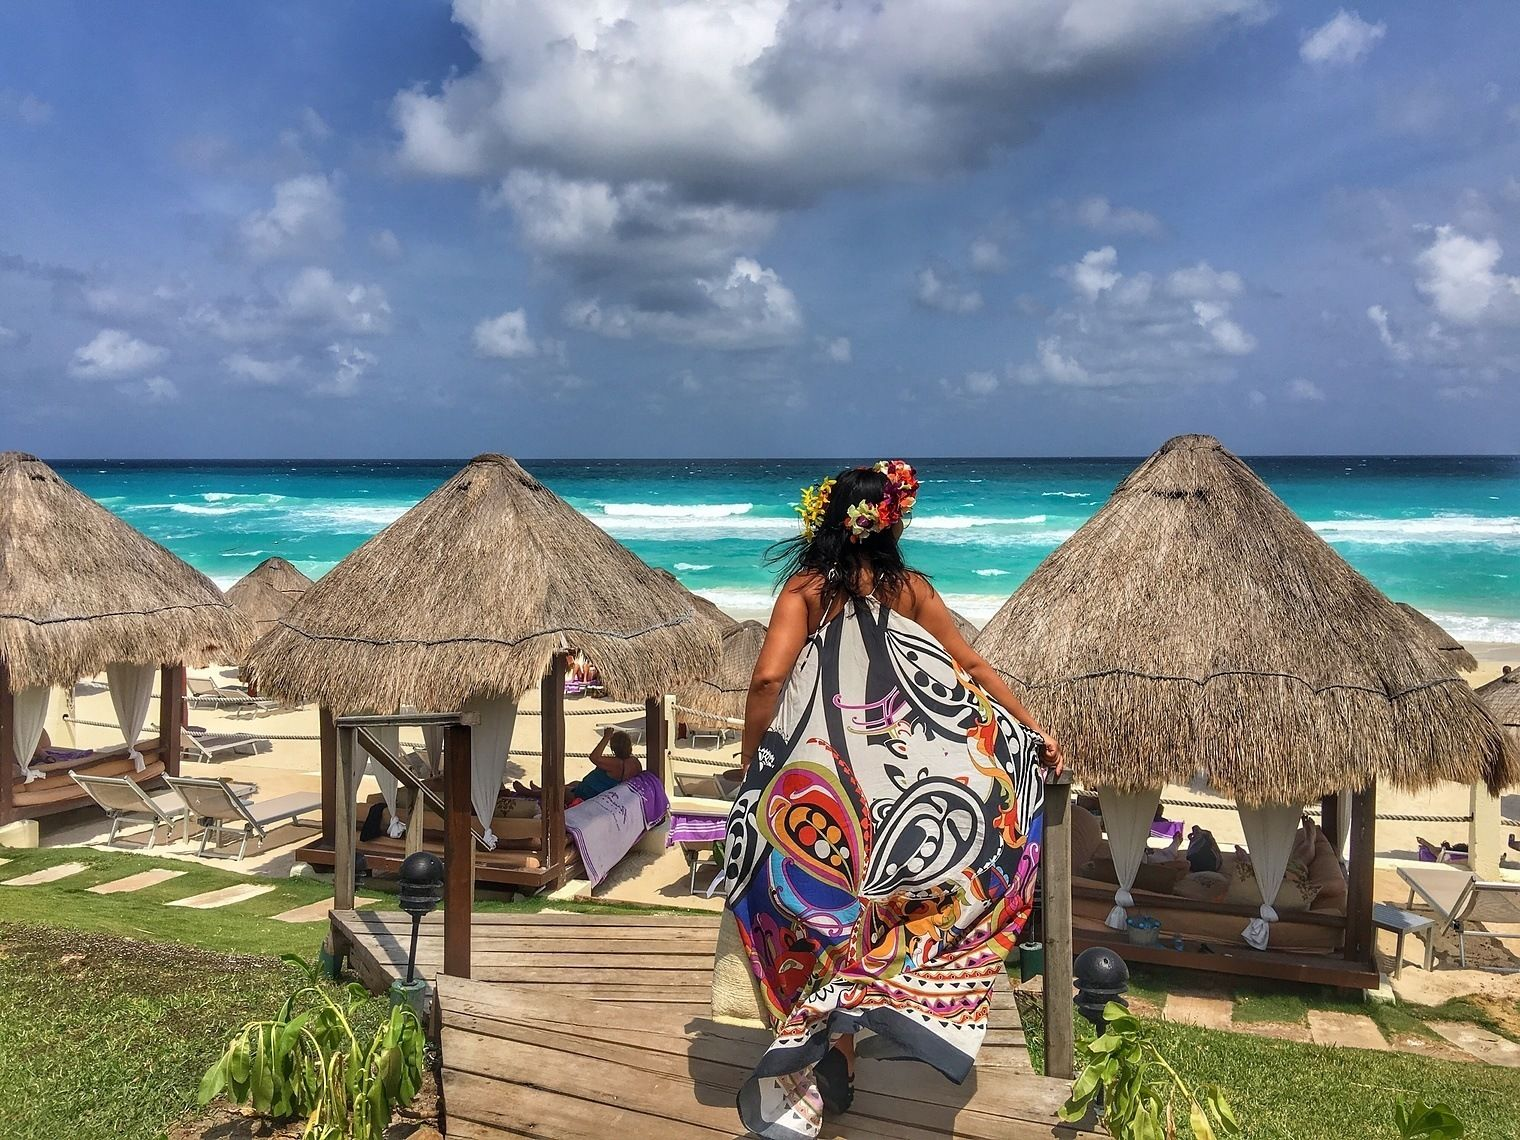 All Inclusive Luxury Resort Experience Paradisus Cancun Mexico Cancun Resorts Cancun Vacation Cancun